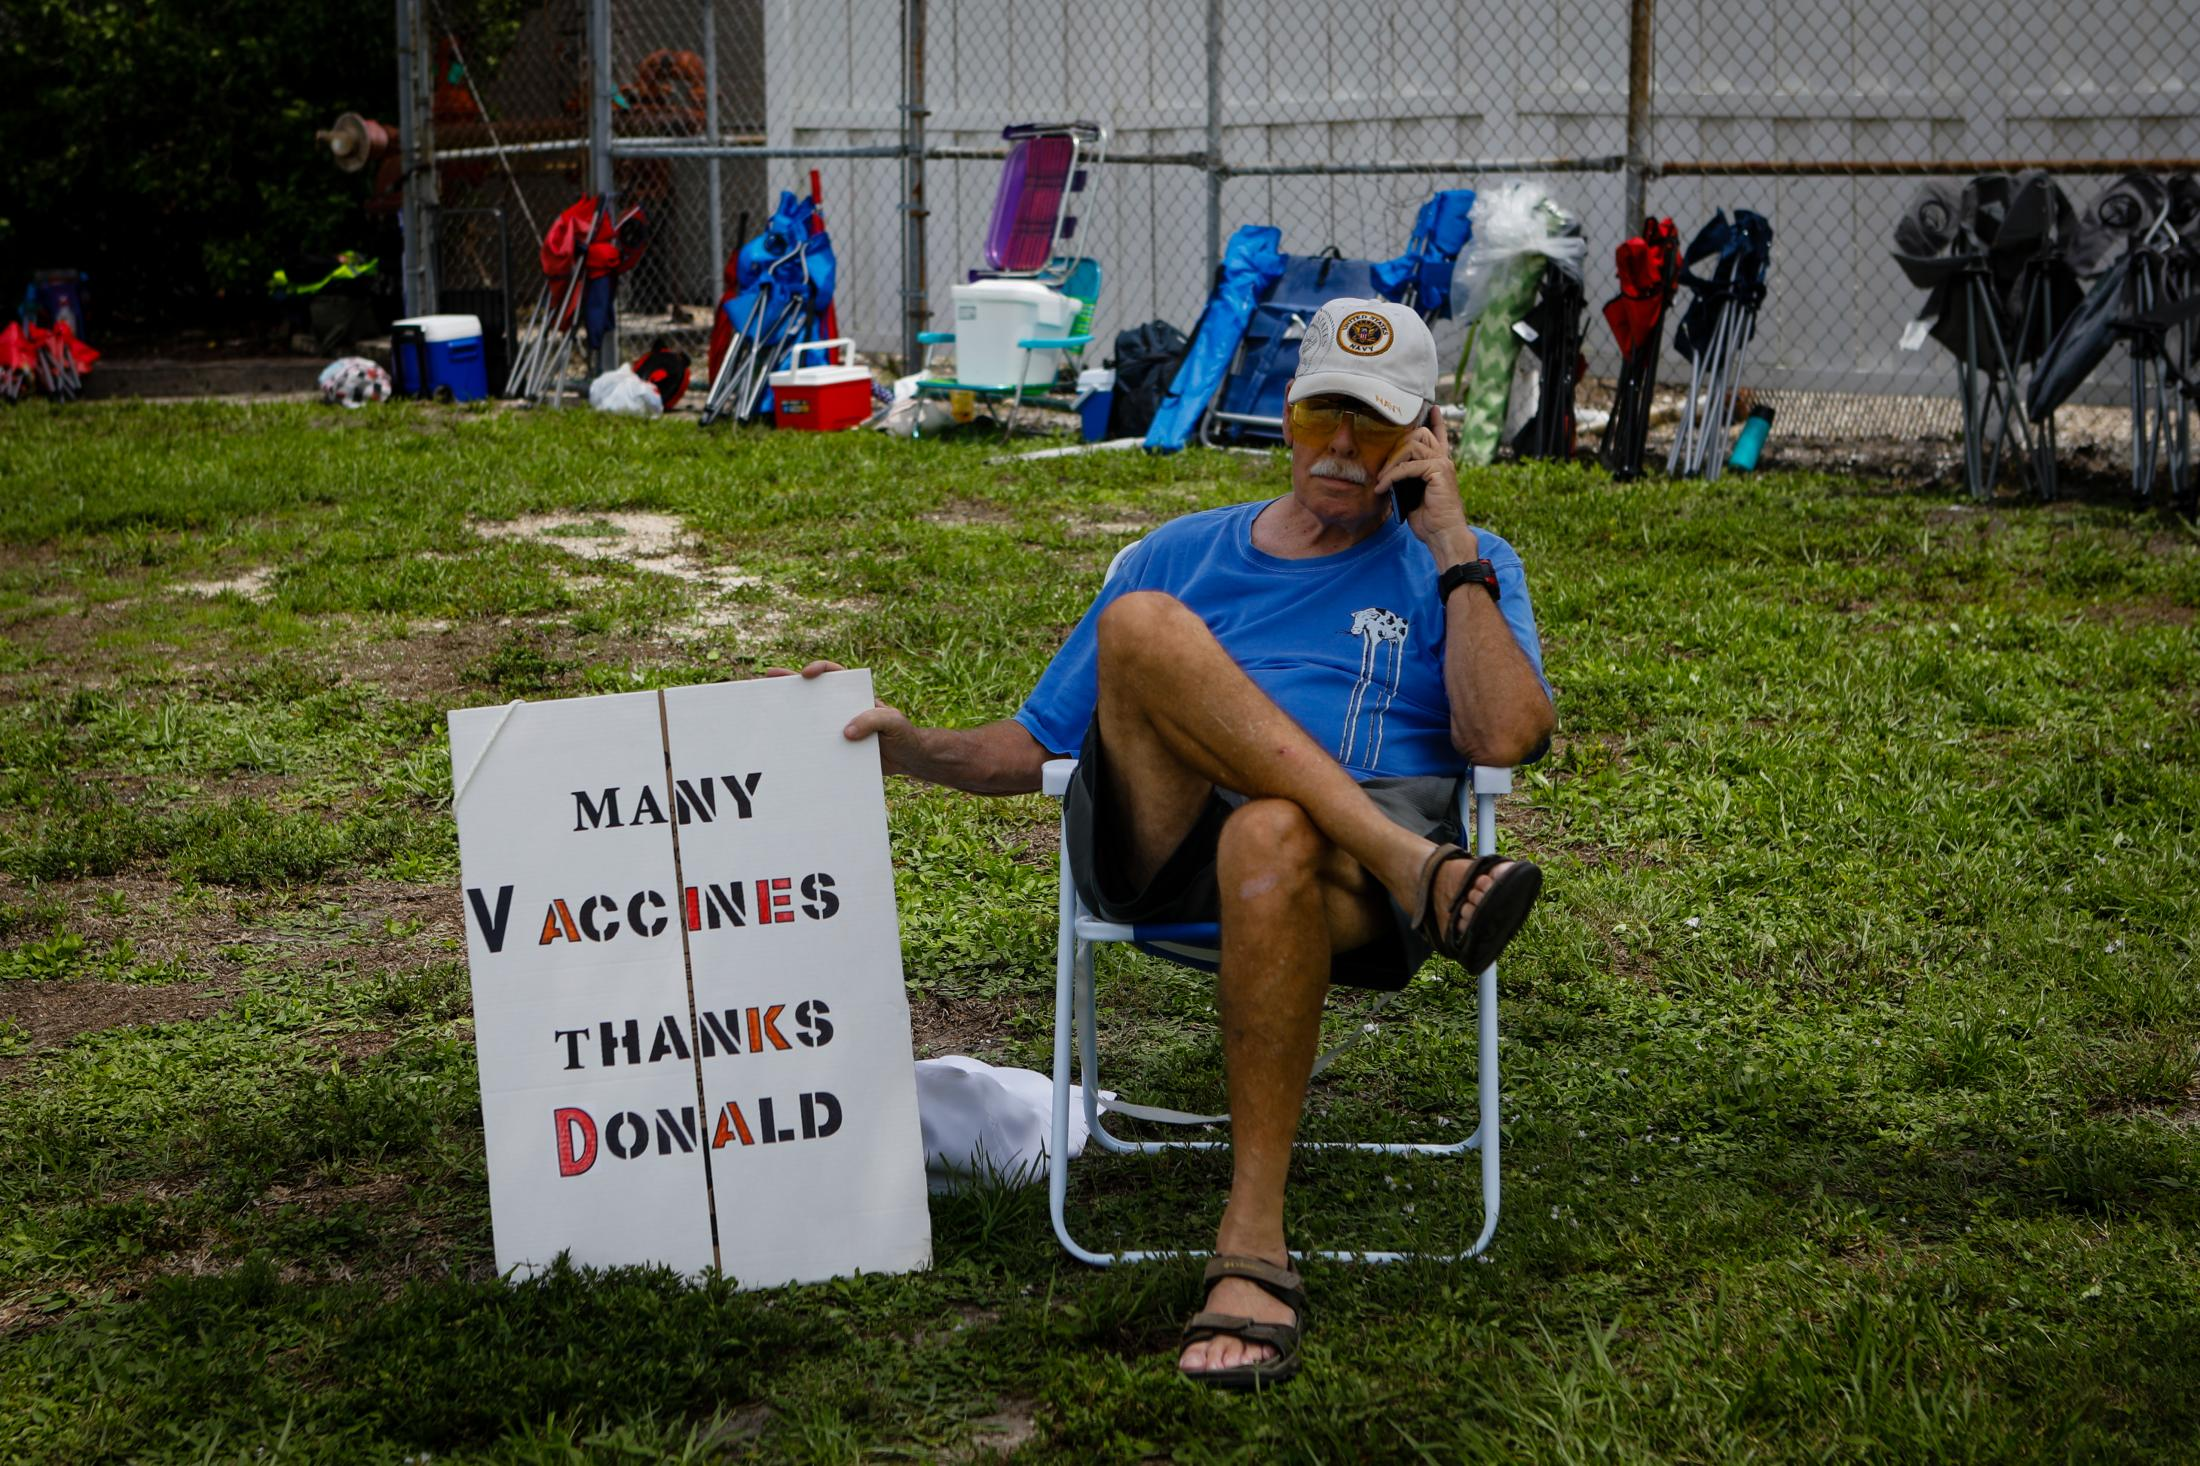 """SARASOTA, FL - JULY 03: A man holds a sign """"Many vaccines thanks Donald"""" as he waits for the arrival of former U.S. President Donald Trump to hold a rally on July 3, 2021 in Sarasota, Florida. Former U.S. President Donald J. Trump hold a major rally co-sponsored by the Republican Party of Florida and marks President Trump's further support of the MAGA agenda and accomplishments of his administration. (Photo by Eva Marie Uzcategui/Getty Images)"""